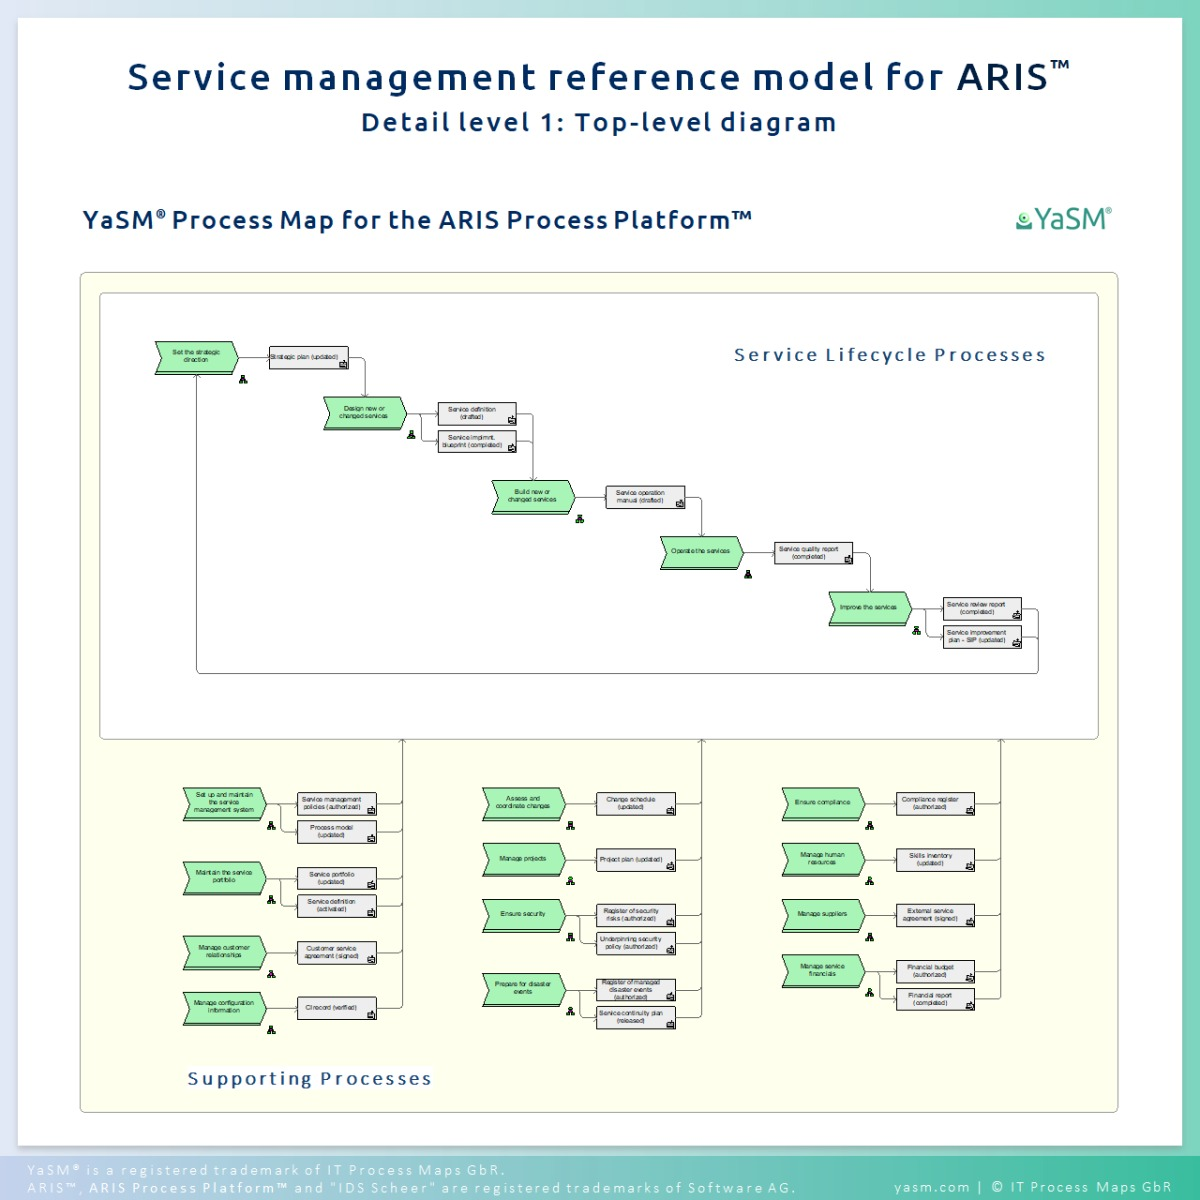 The YaSM Process Map for the ARIS Process Platform: Service management reference process model for IT service management (ITSM) and enterprise service management initiatives.